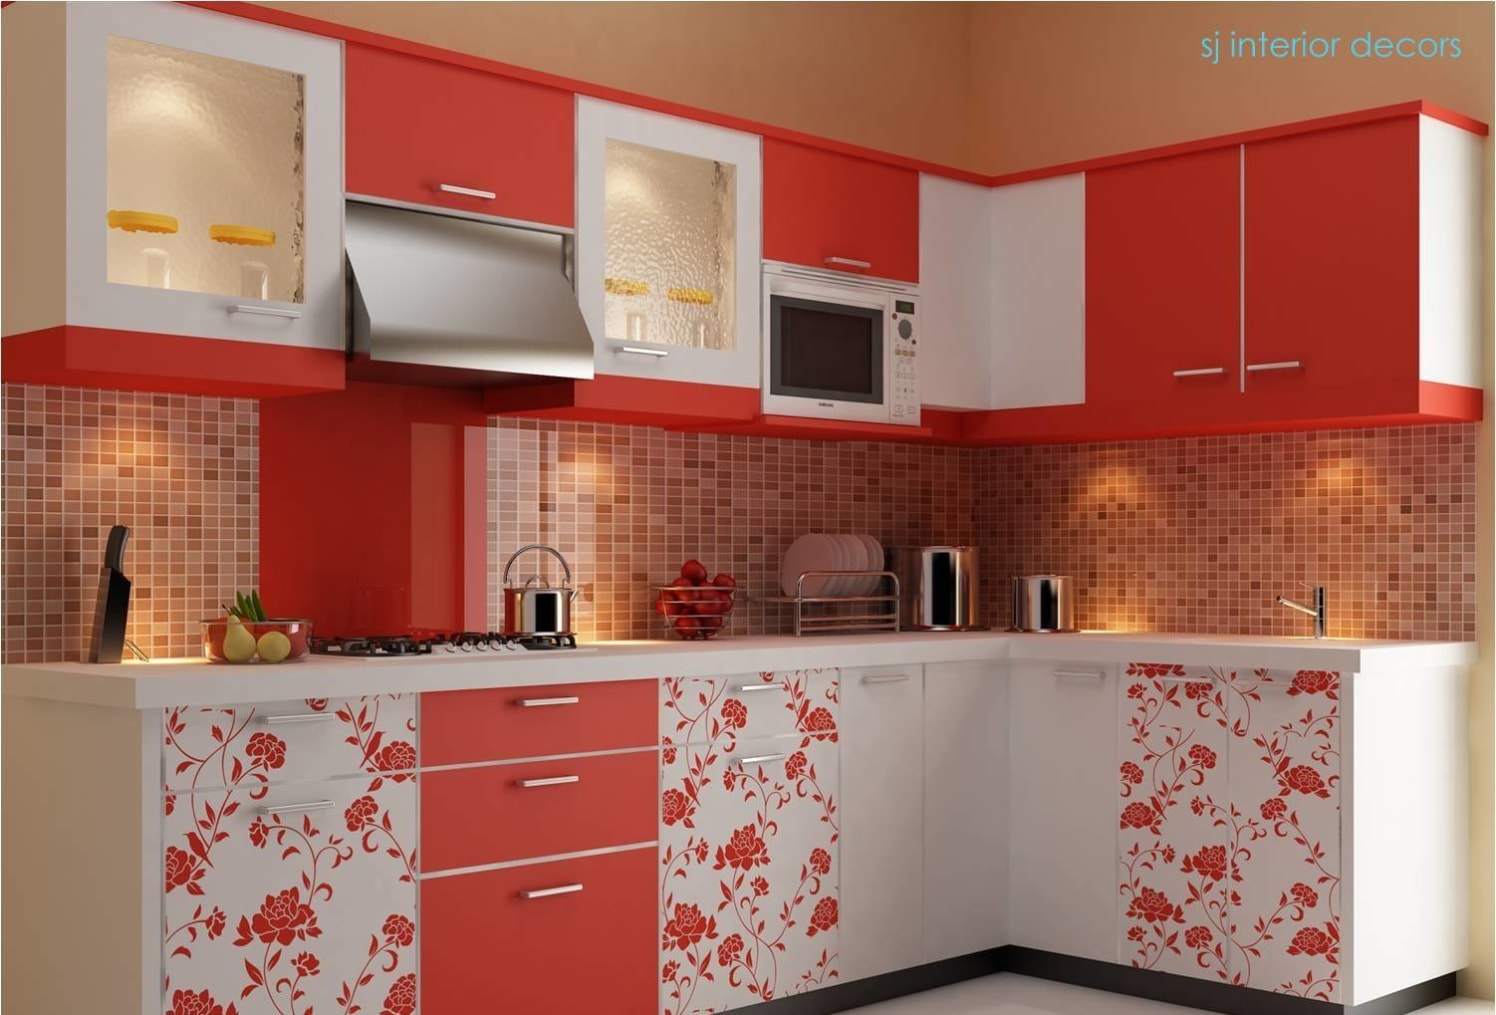 by SJ Interior Decors